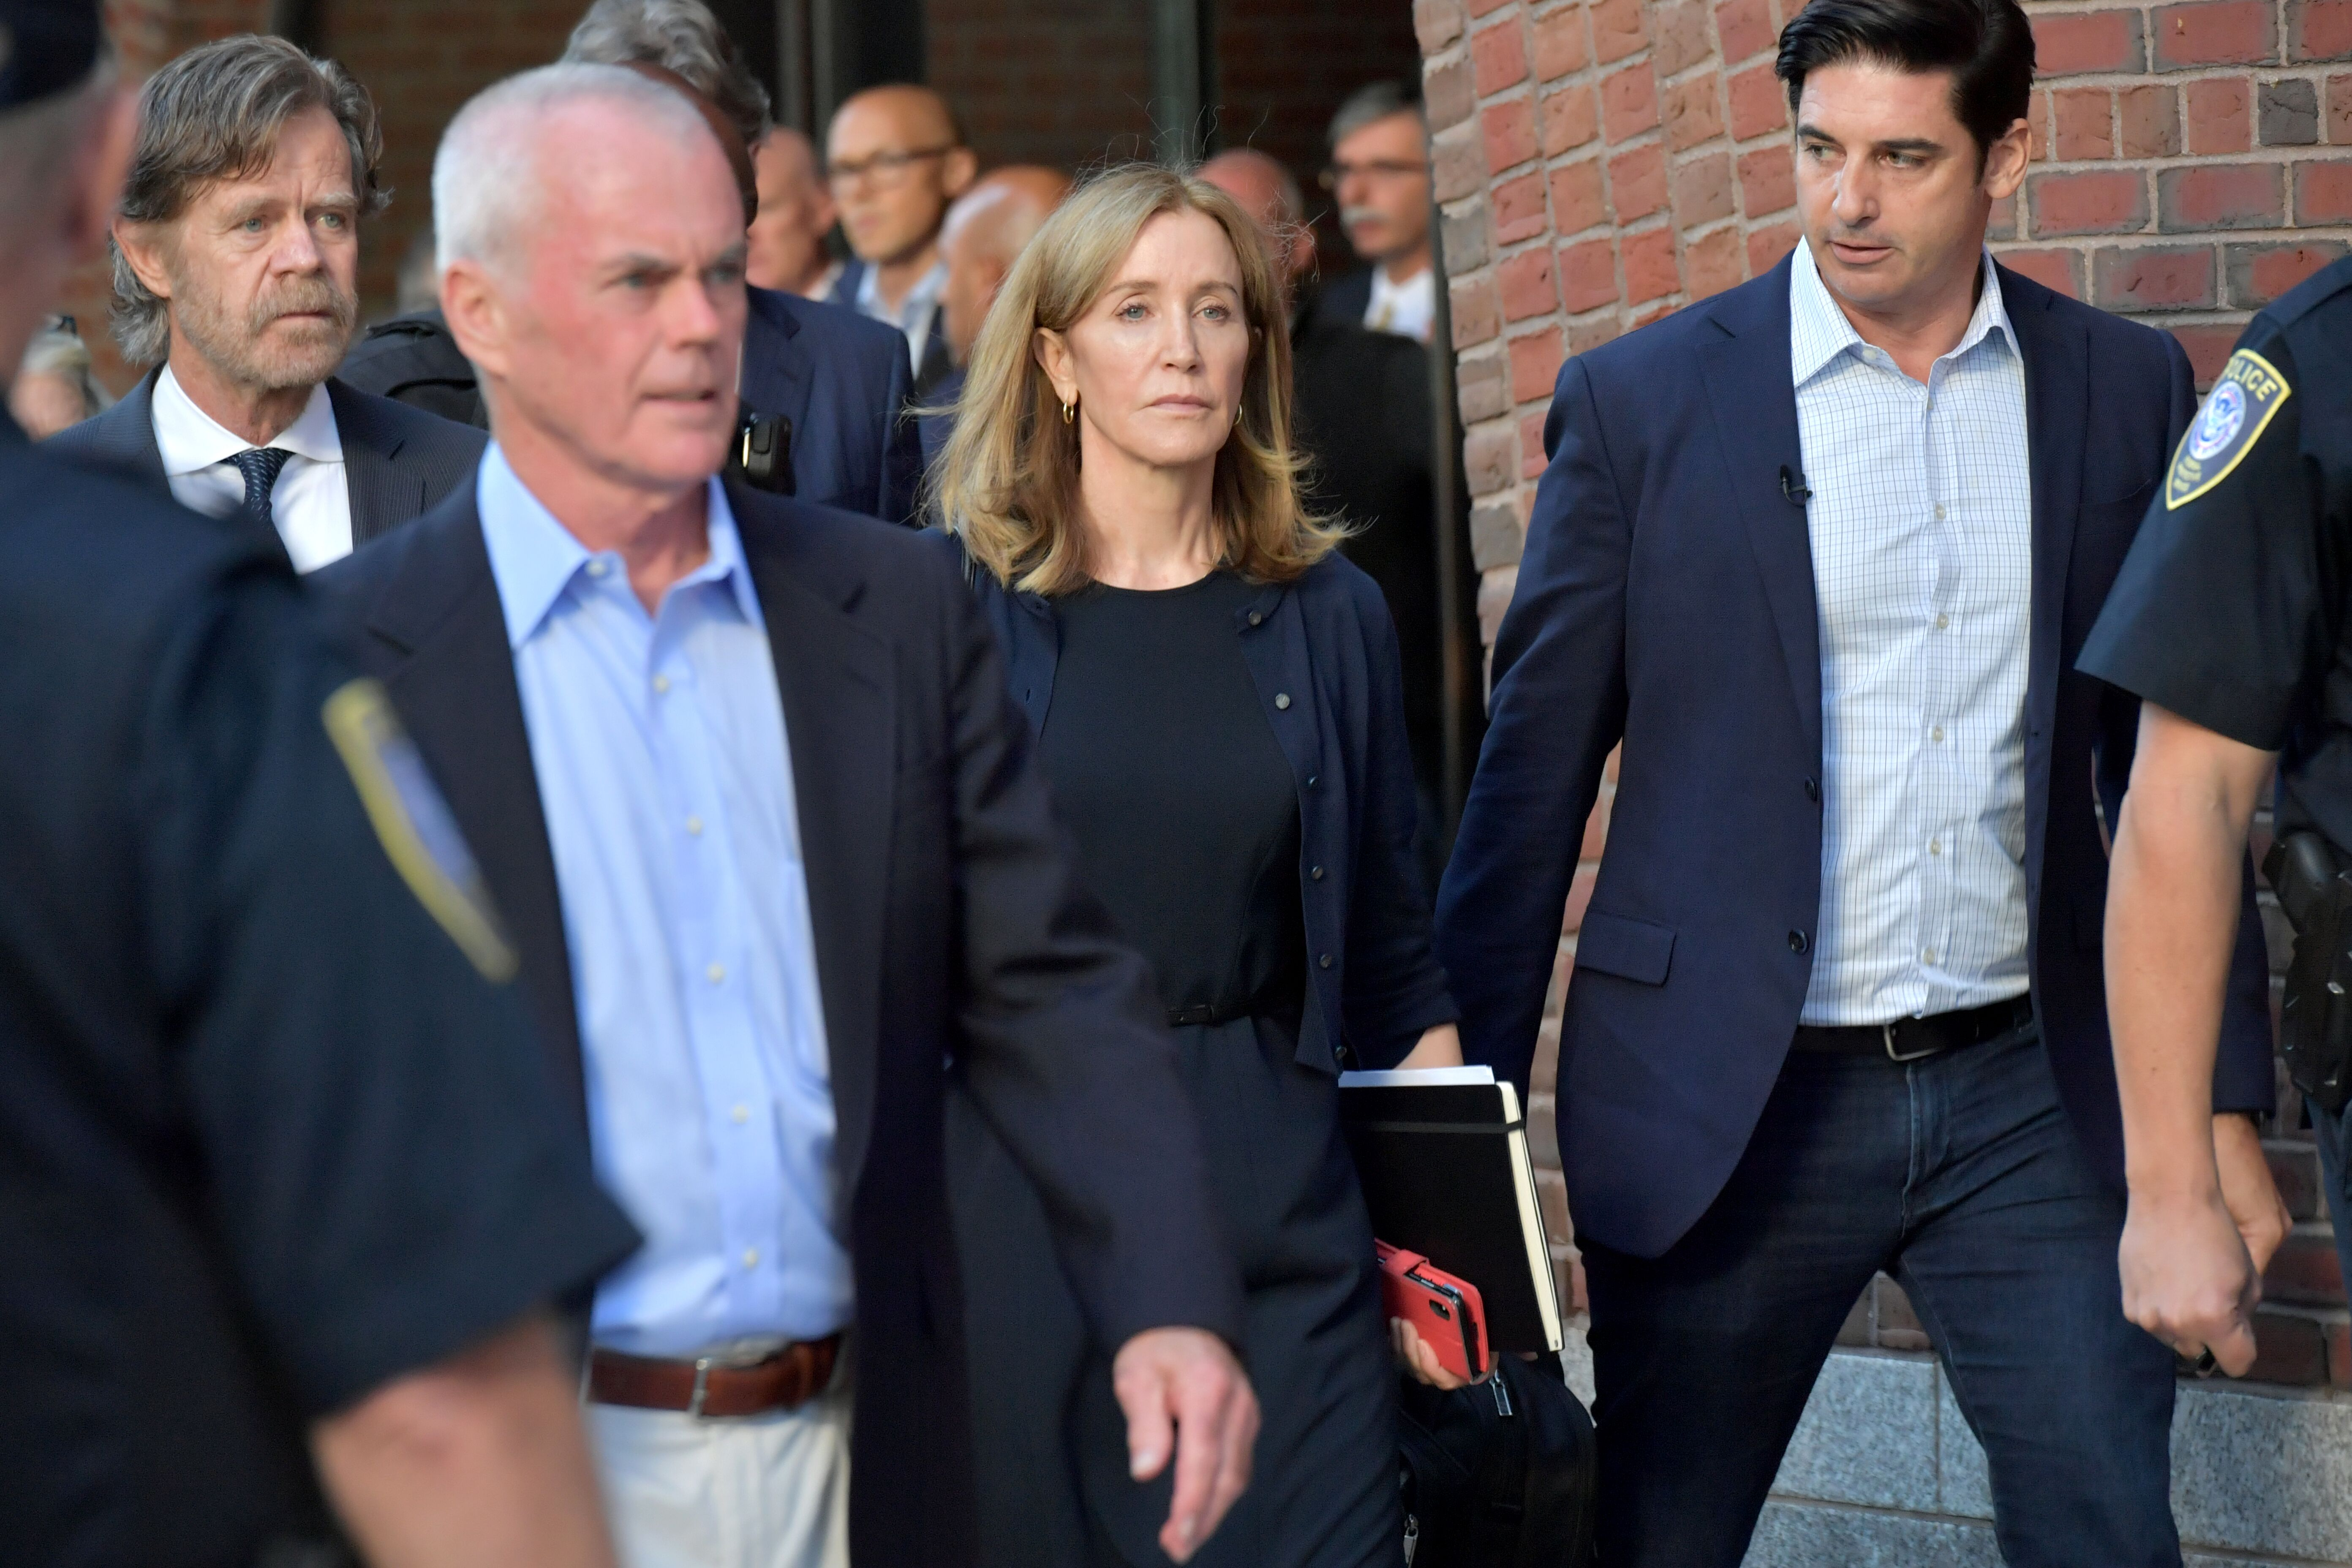 Felicity Huffman heading to court | Source: Getty Images/GlobalImagesUkraine